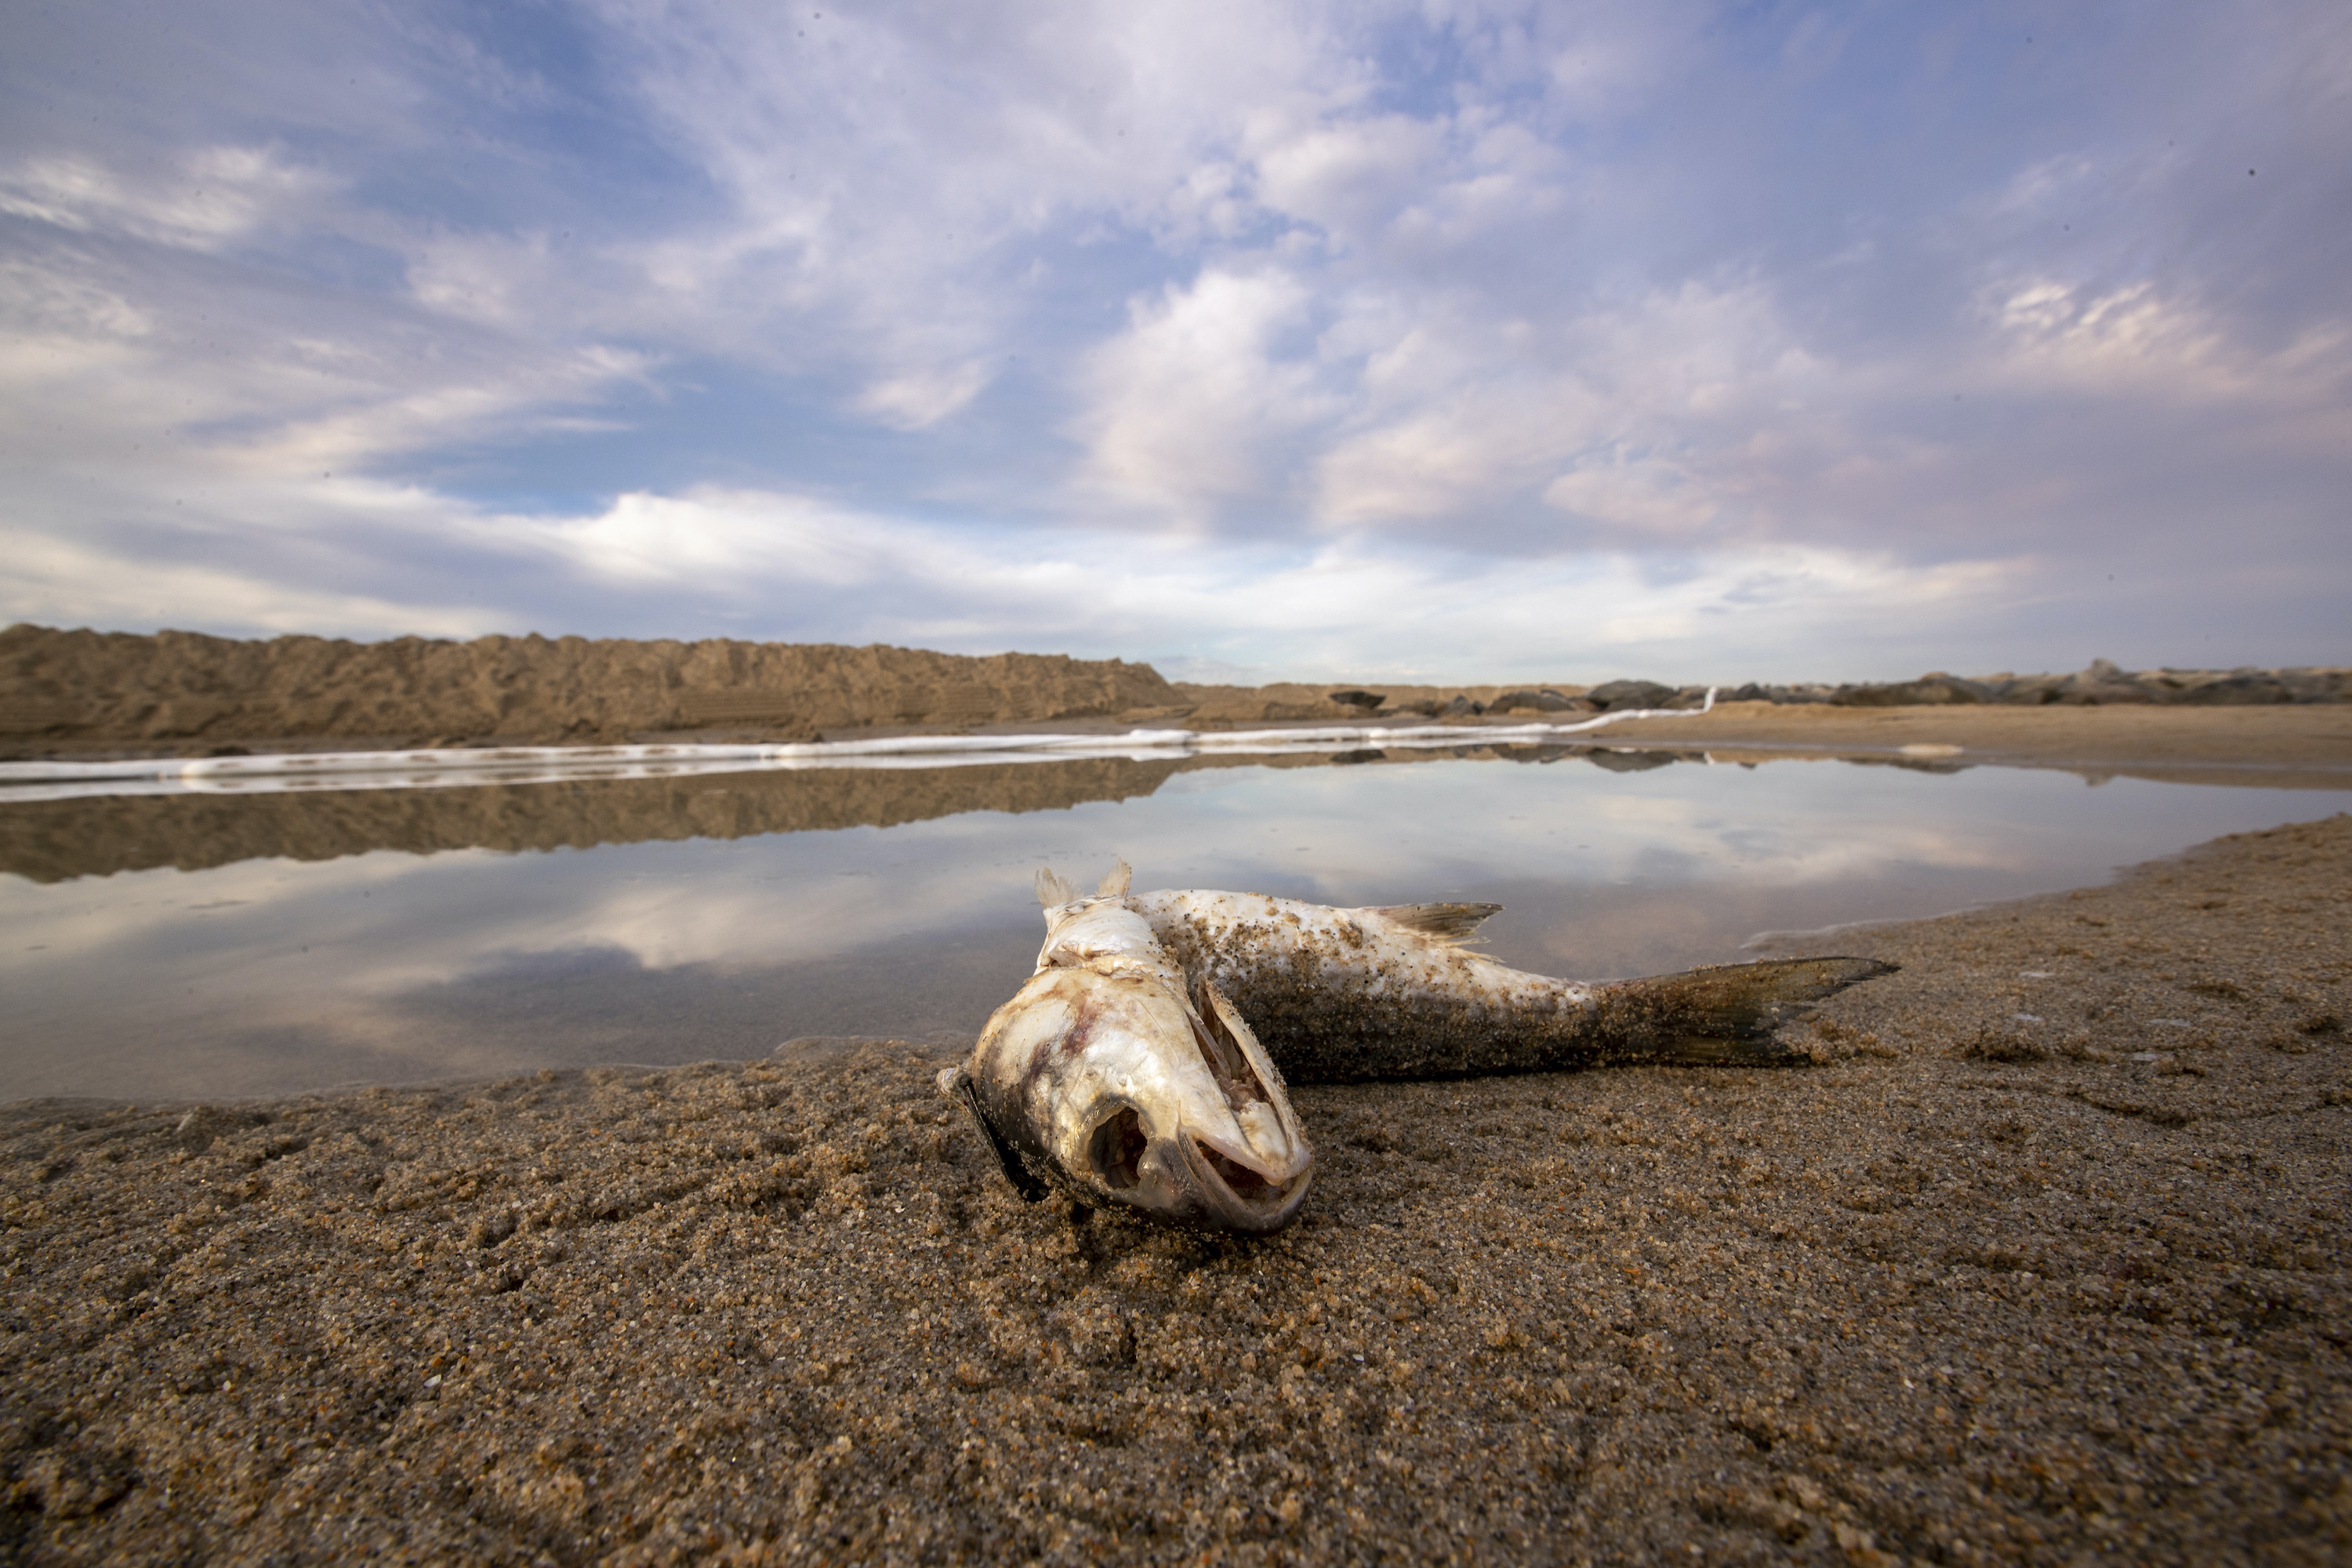 The carcass of a large fish, its skull visible, lies on blackened sand